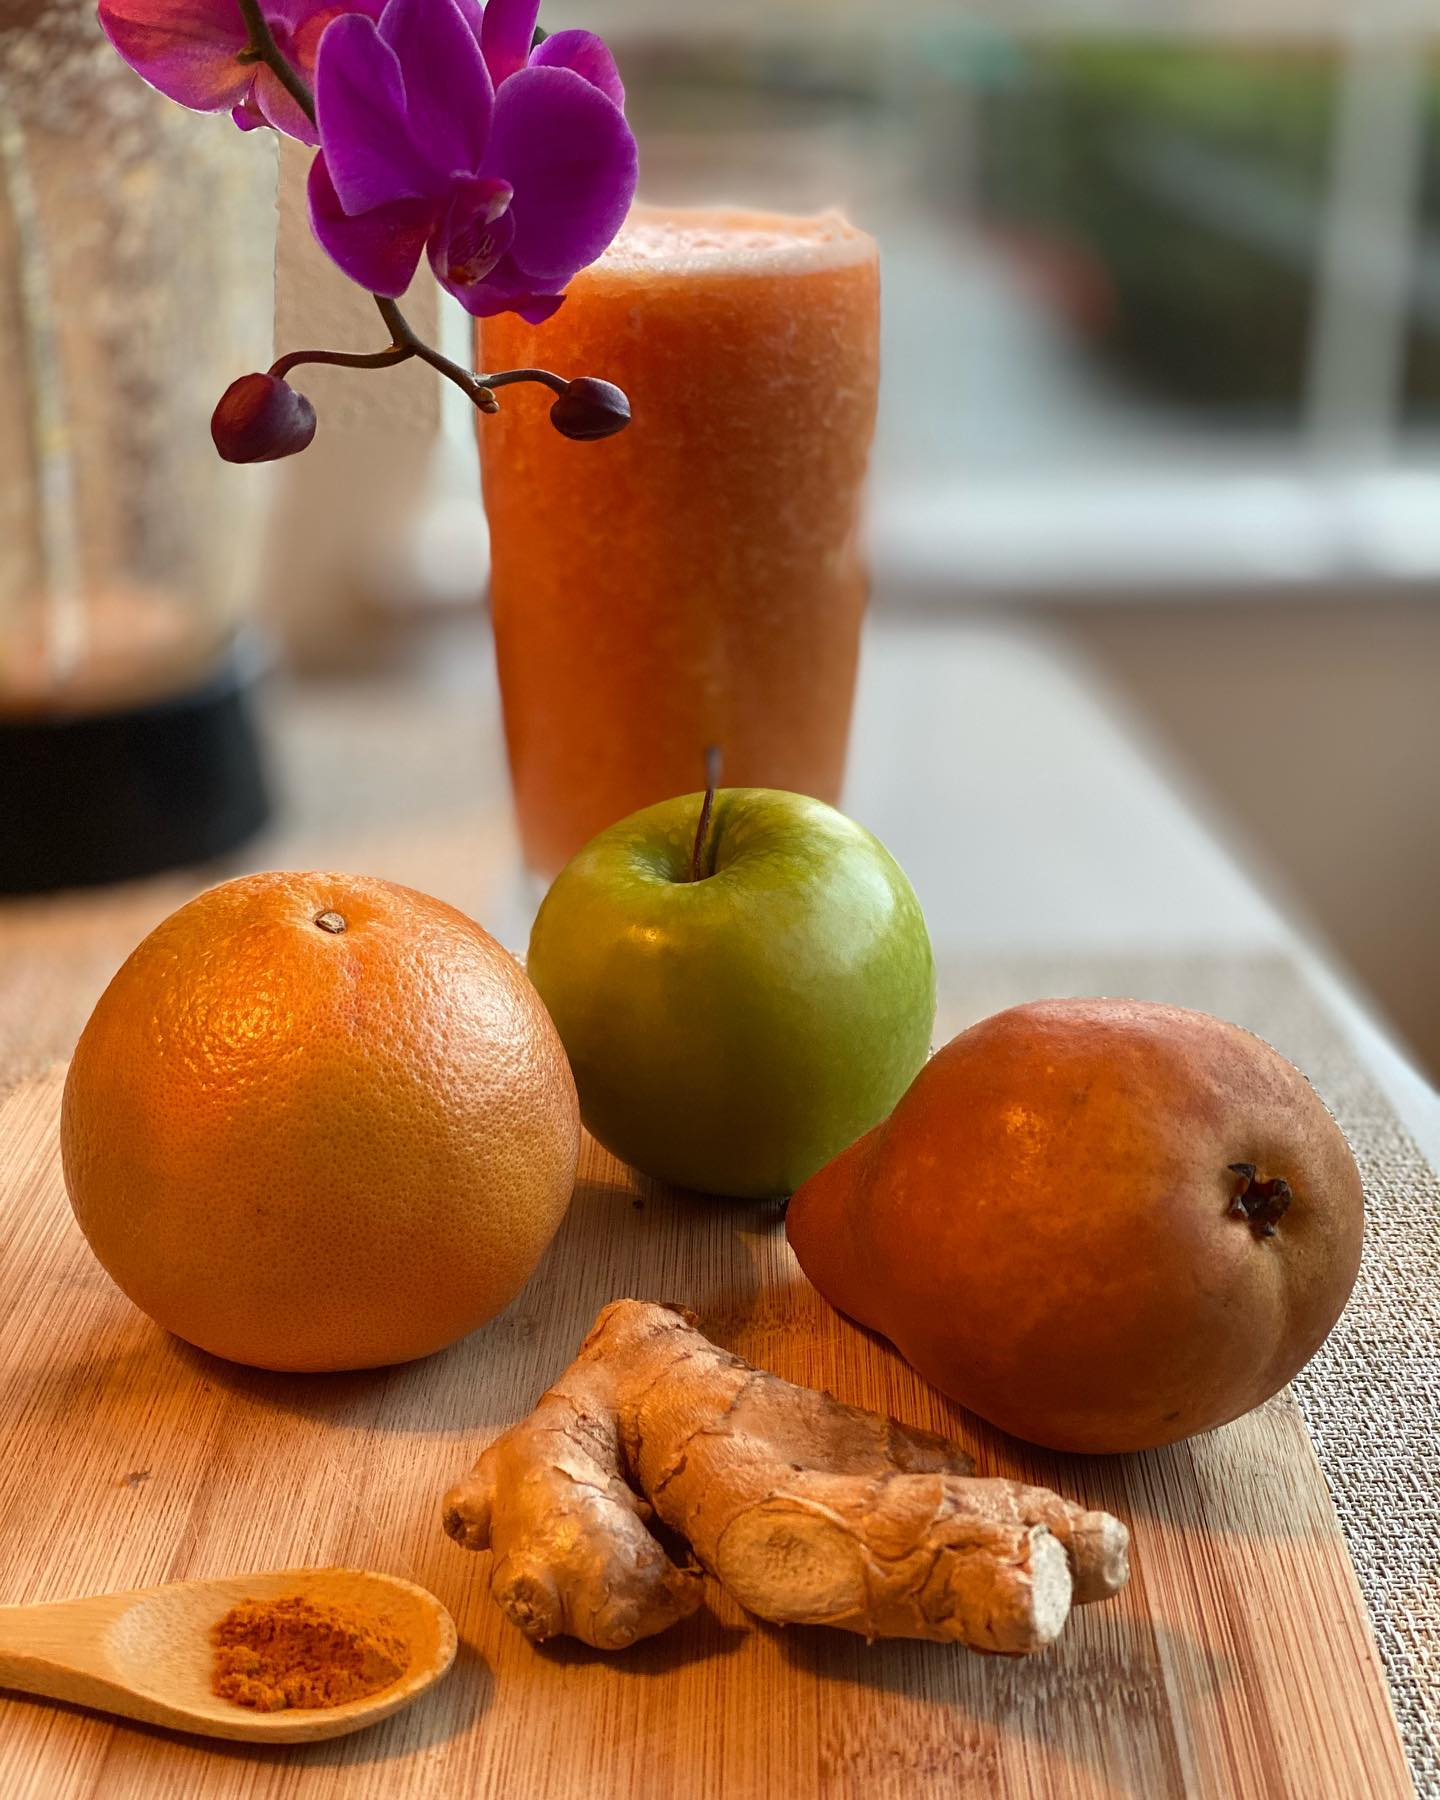 Winter Warm Smoothie or Ginger Tea for Your Daily Antioxidant Boost